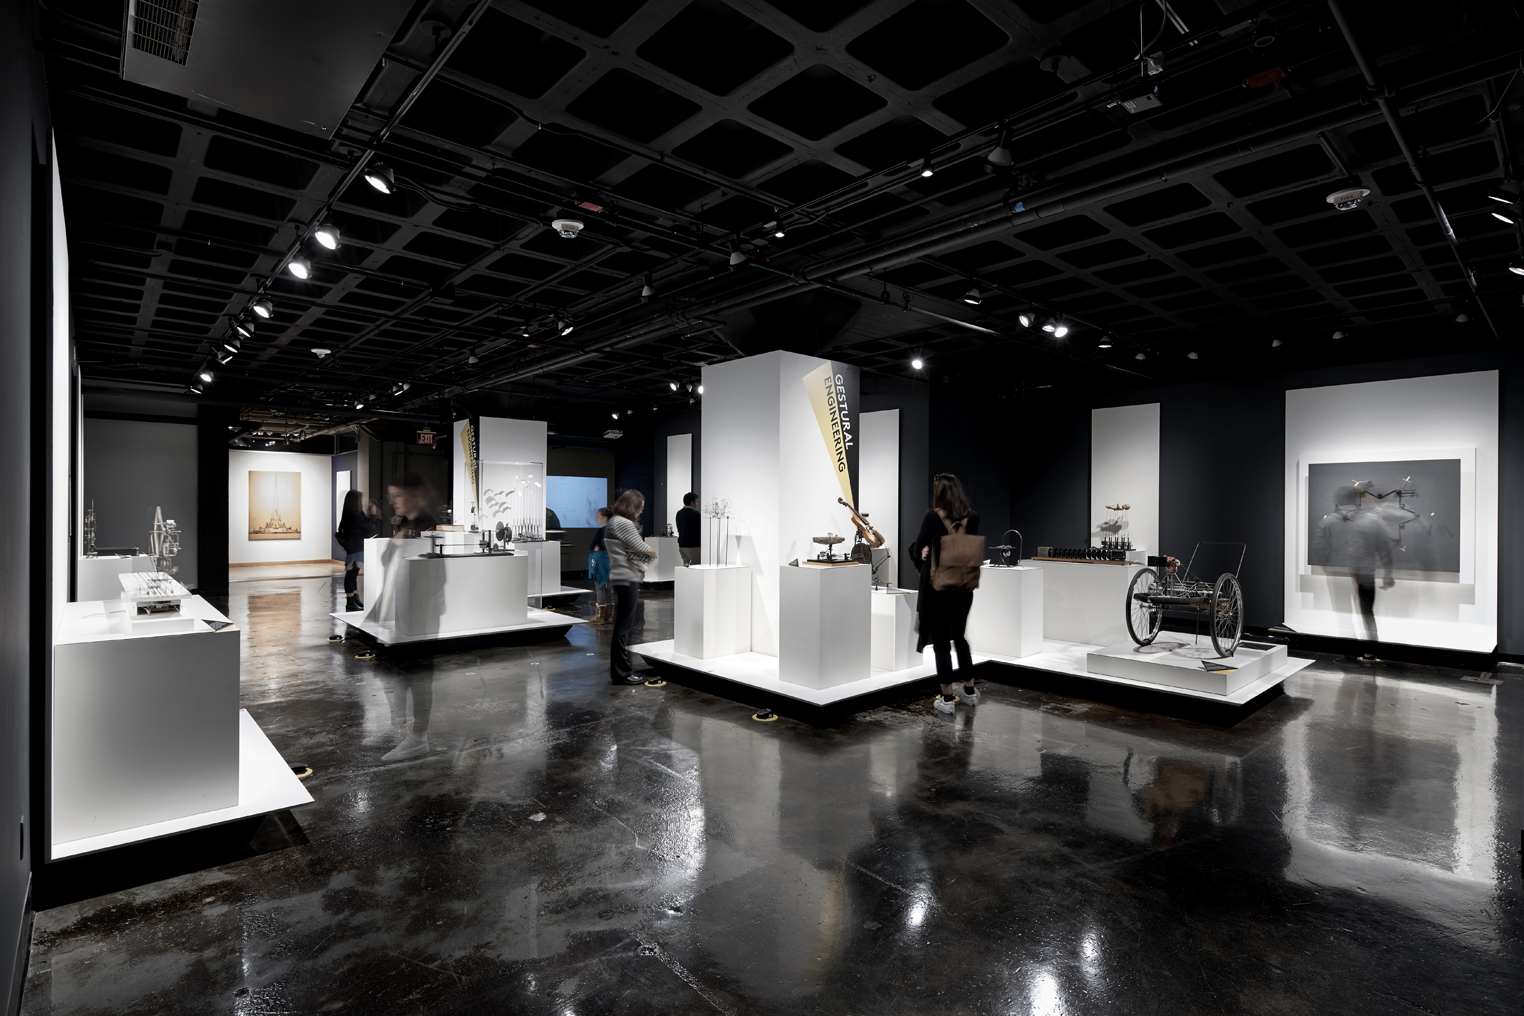 IKD was hired by the MIT museum to design the renovation and reinstallation of the Arthur Ganson gallery.